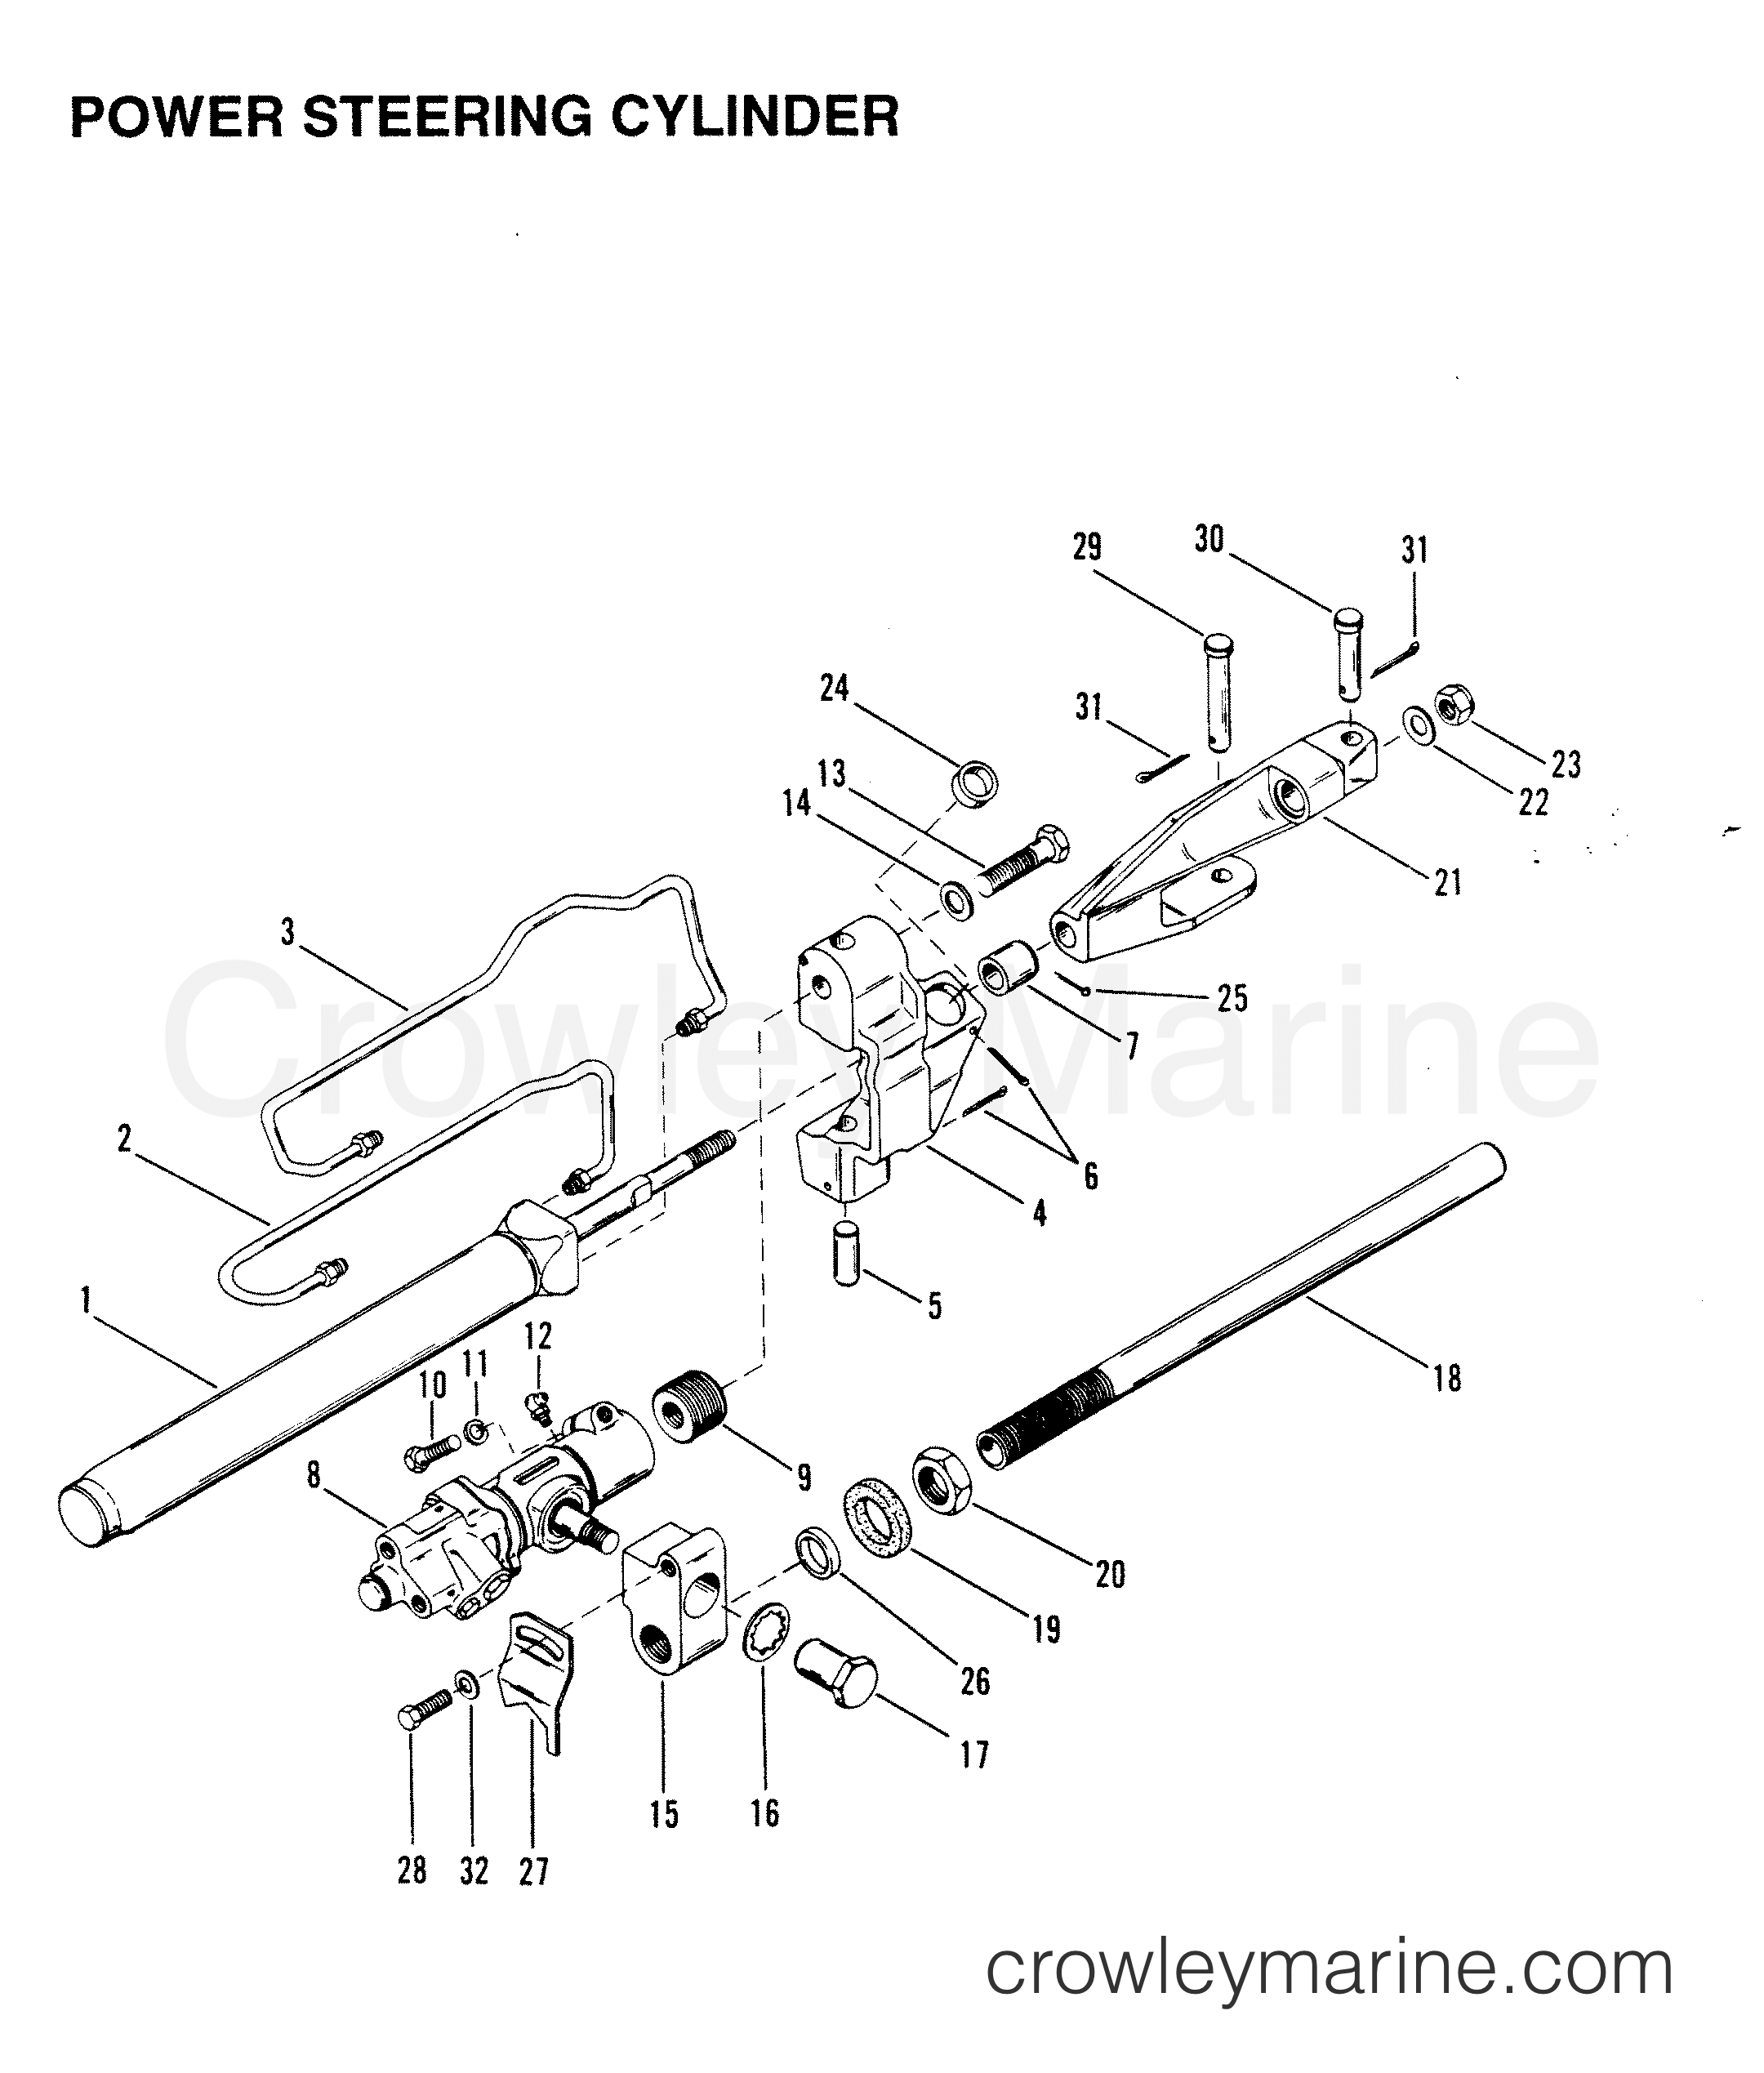 Power Steering Cylinder Stern Drive